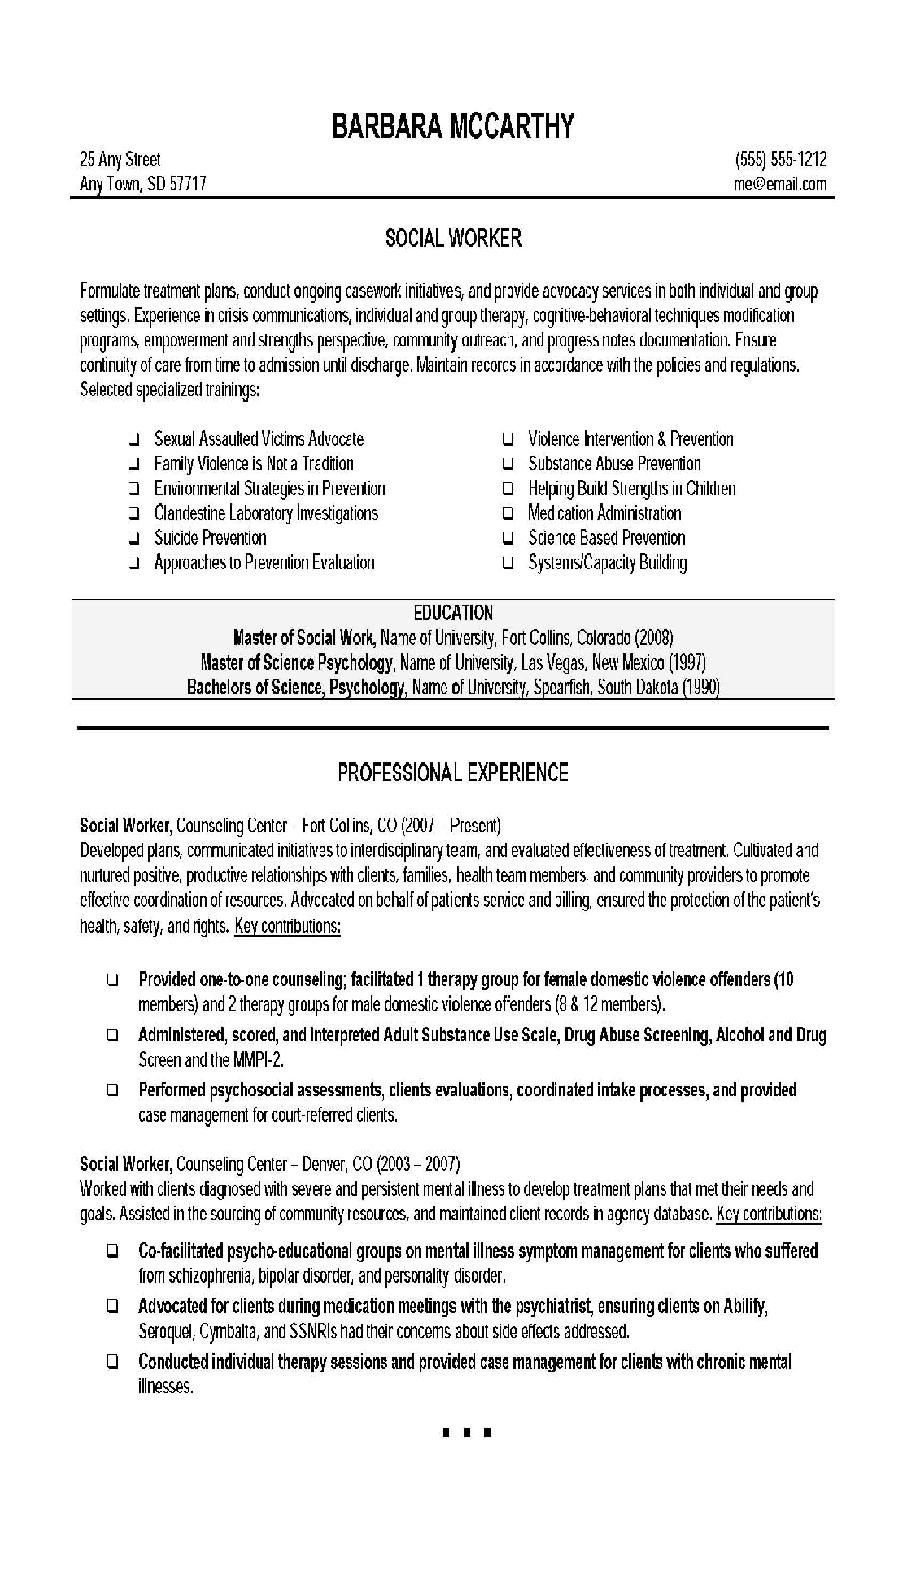 Social Worker Resume 4 Social Work Social Worker Clinical